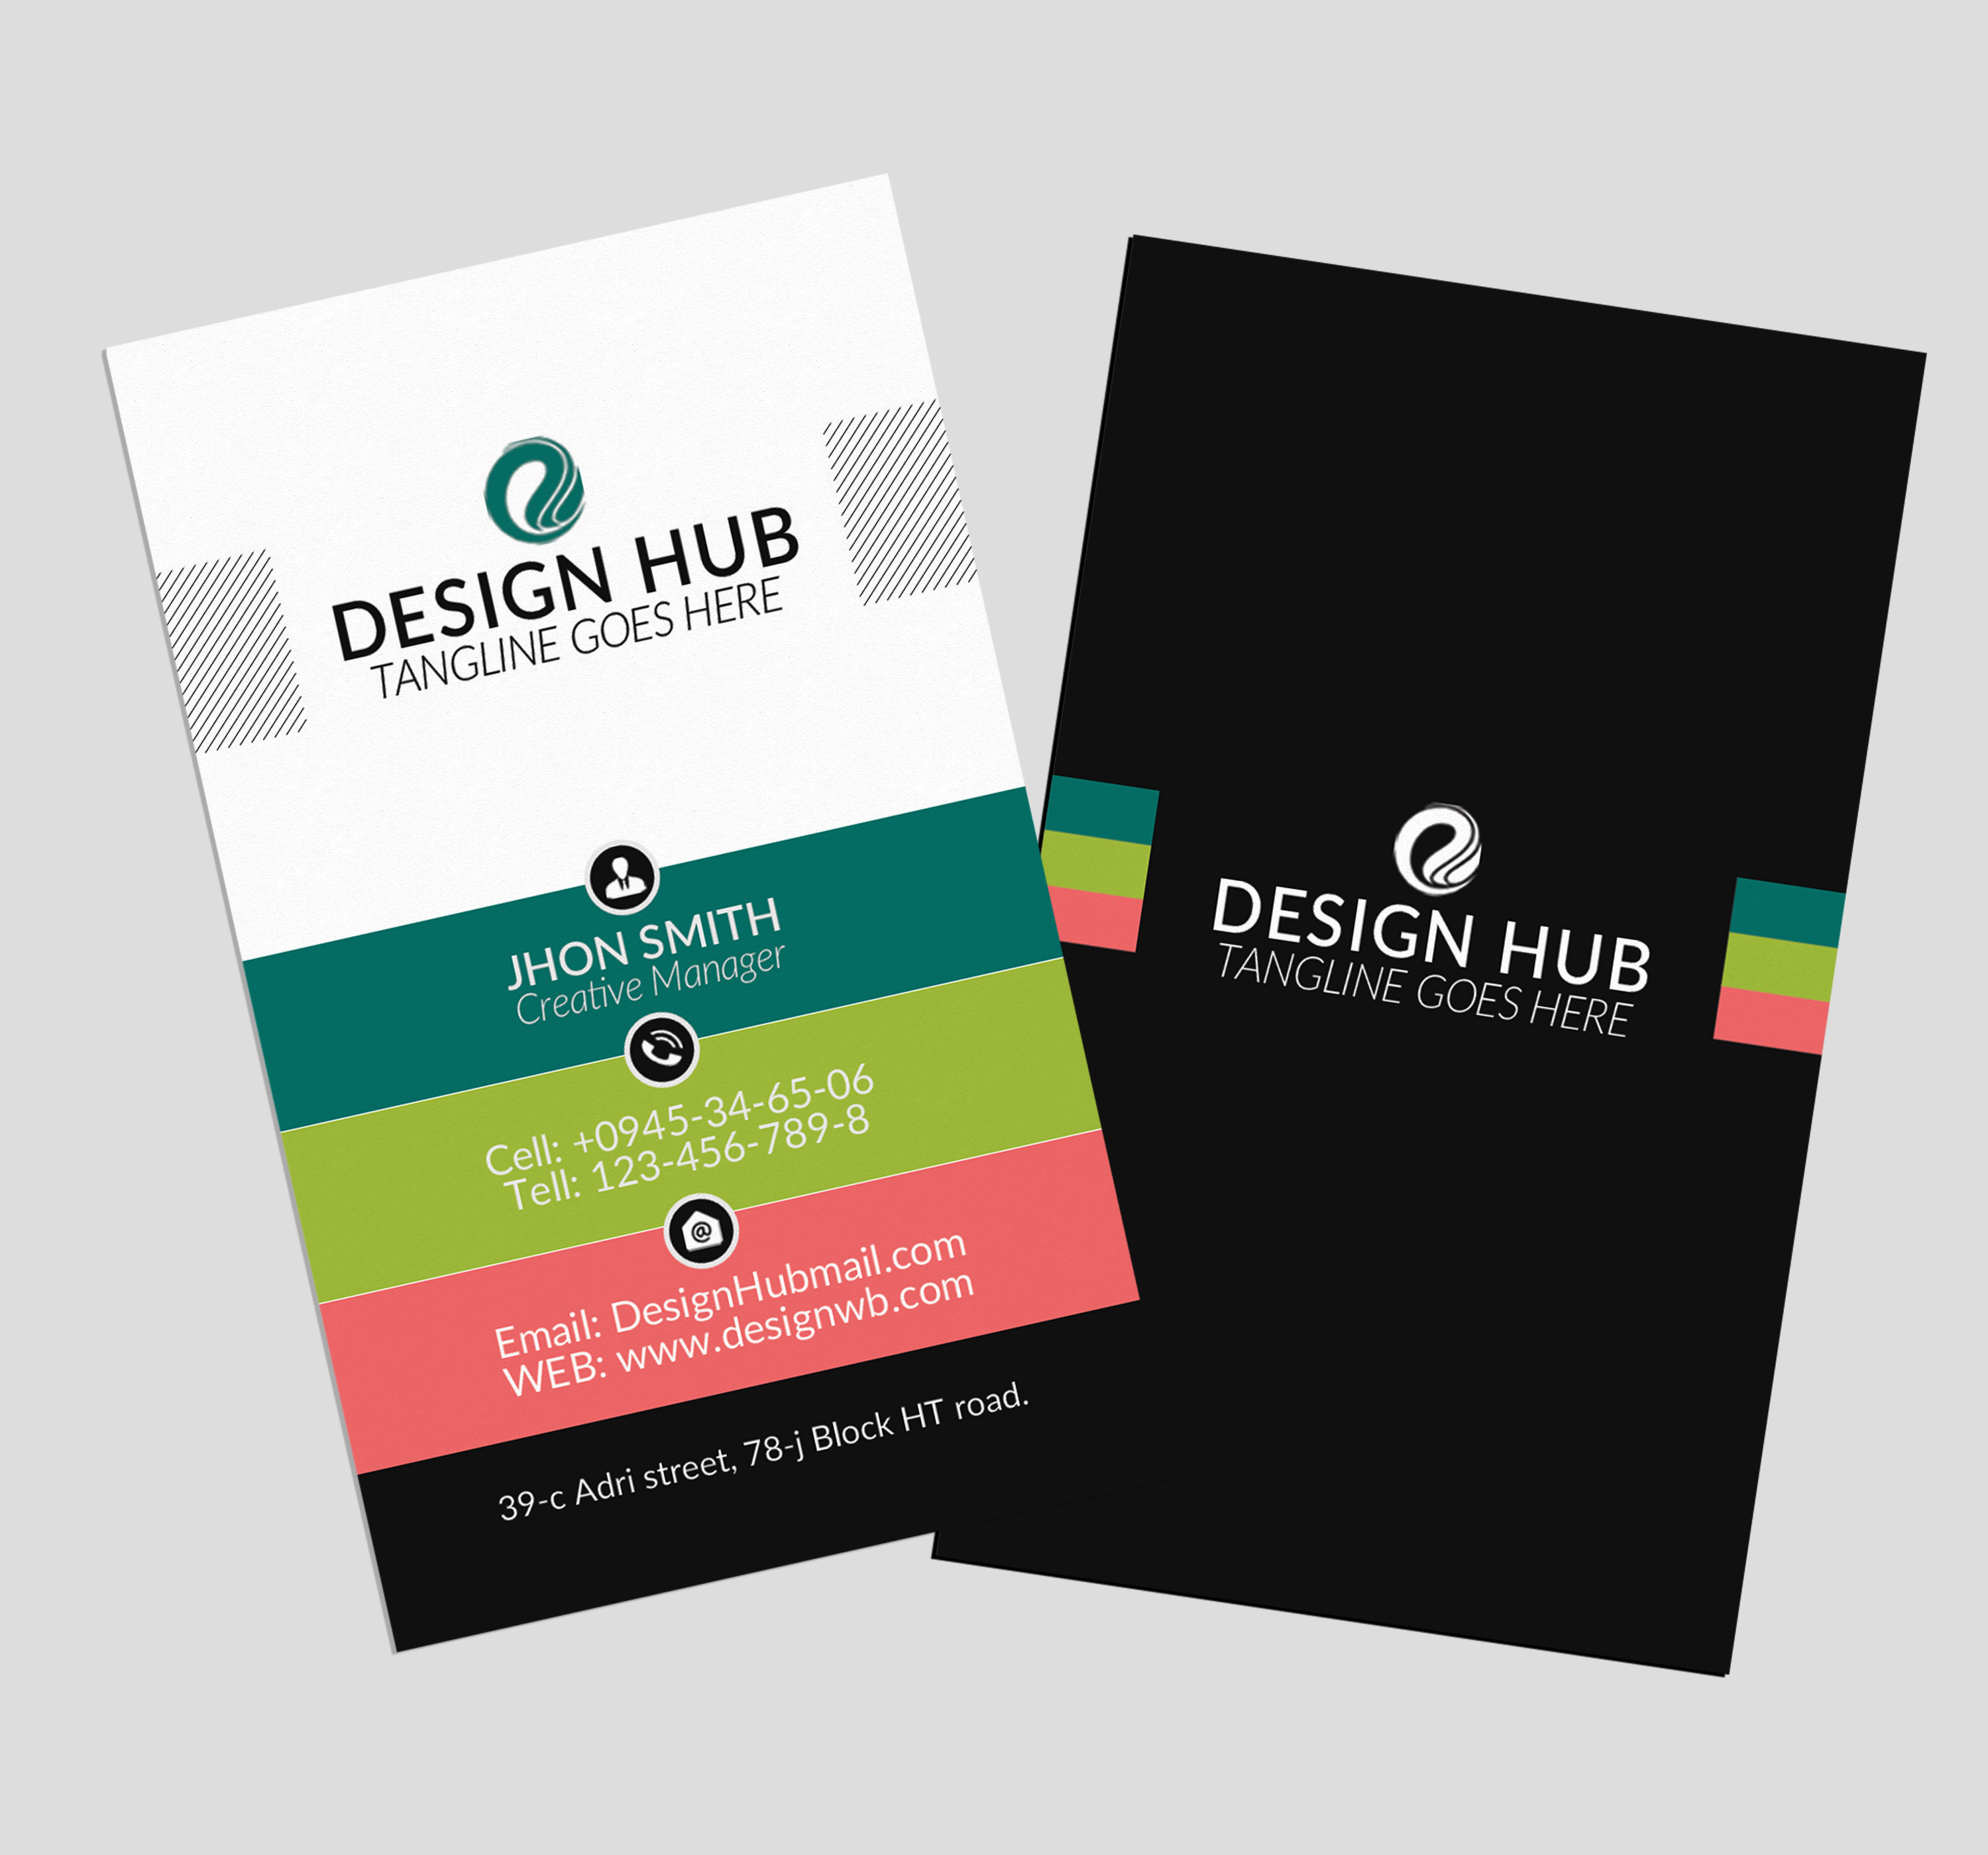 Vertical Business Visitig Cards example image 3